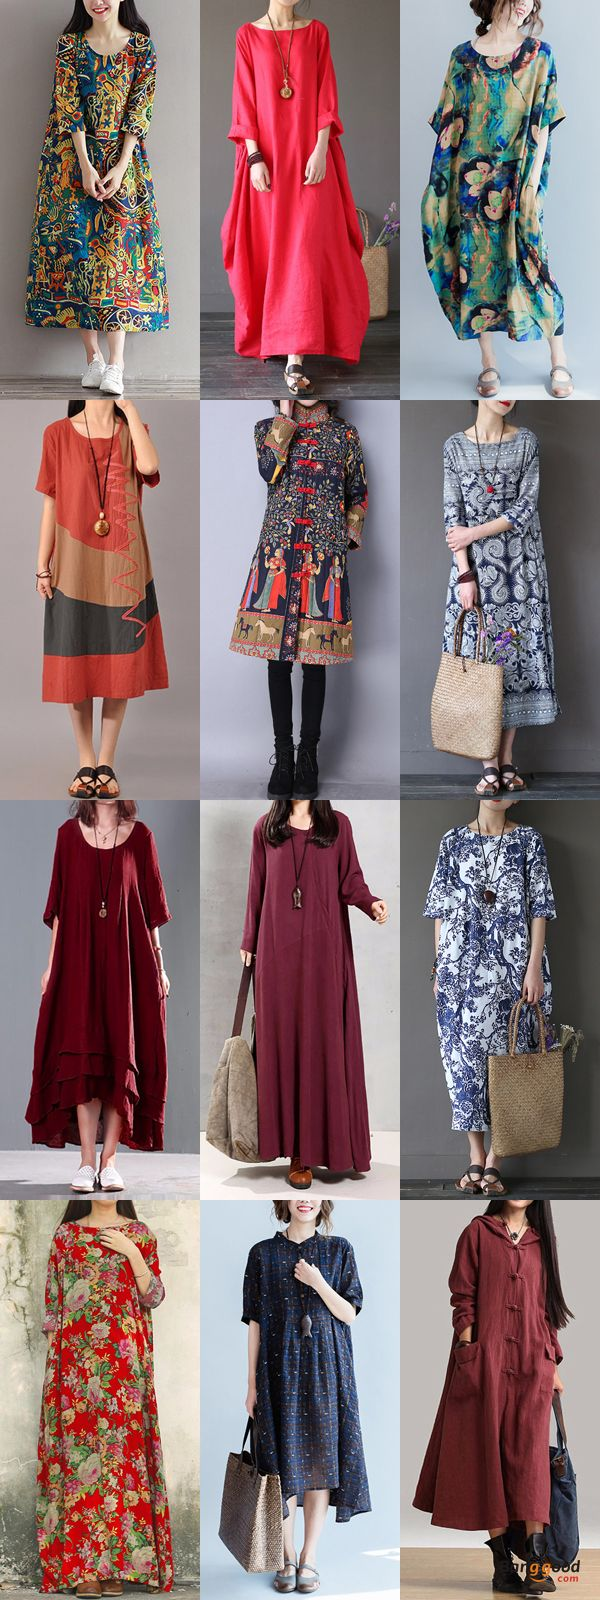 Dress for Women. Fall in love with vintage and fashion style! Click for more!